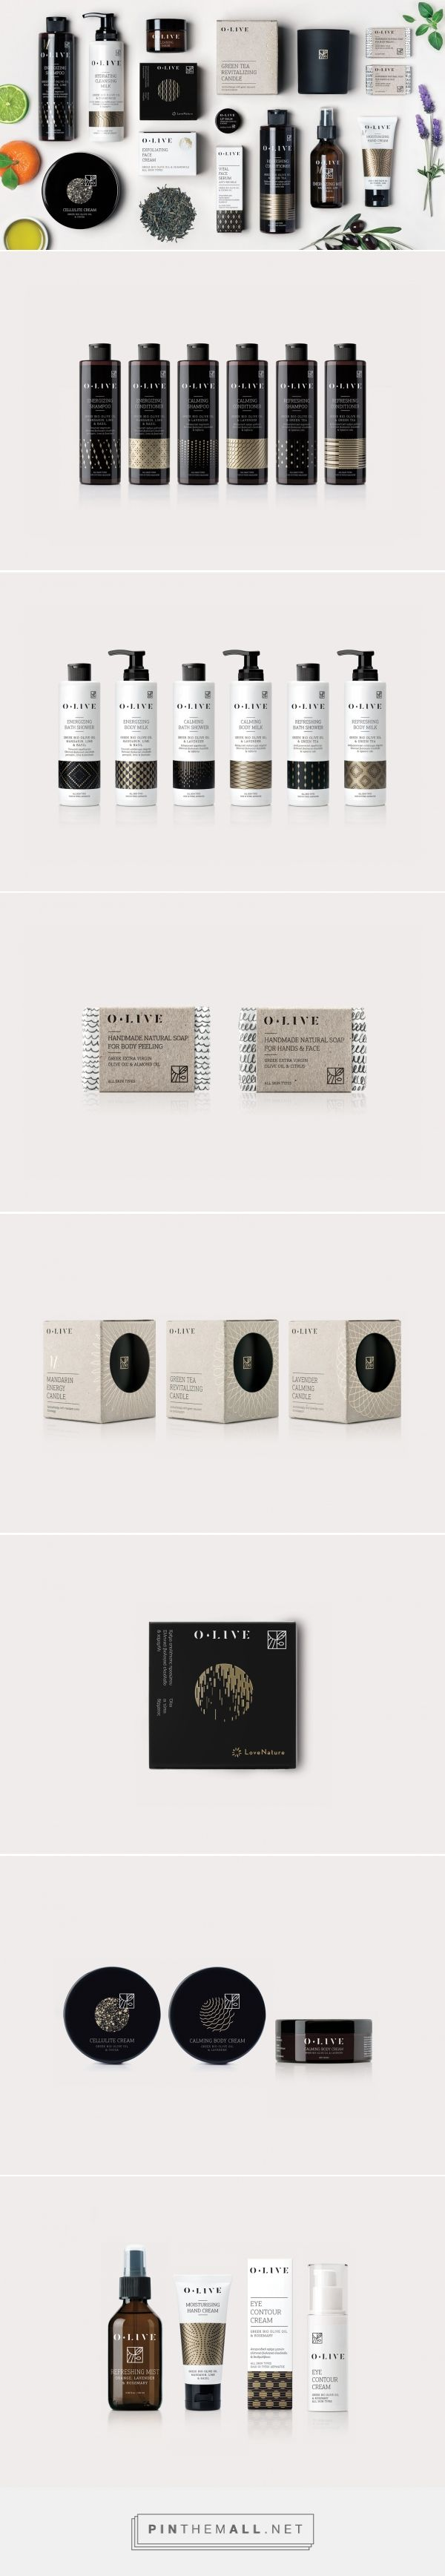 O.LIVE beauty packaging design by Aris Goumpouros - http://www.packagingoftheworld.com/2017/09/olive.html